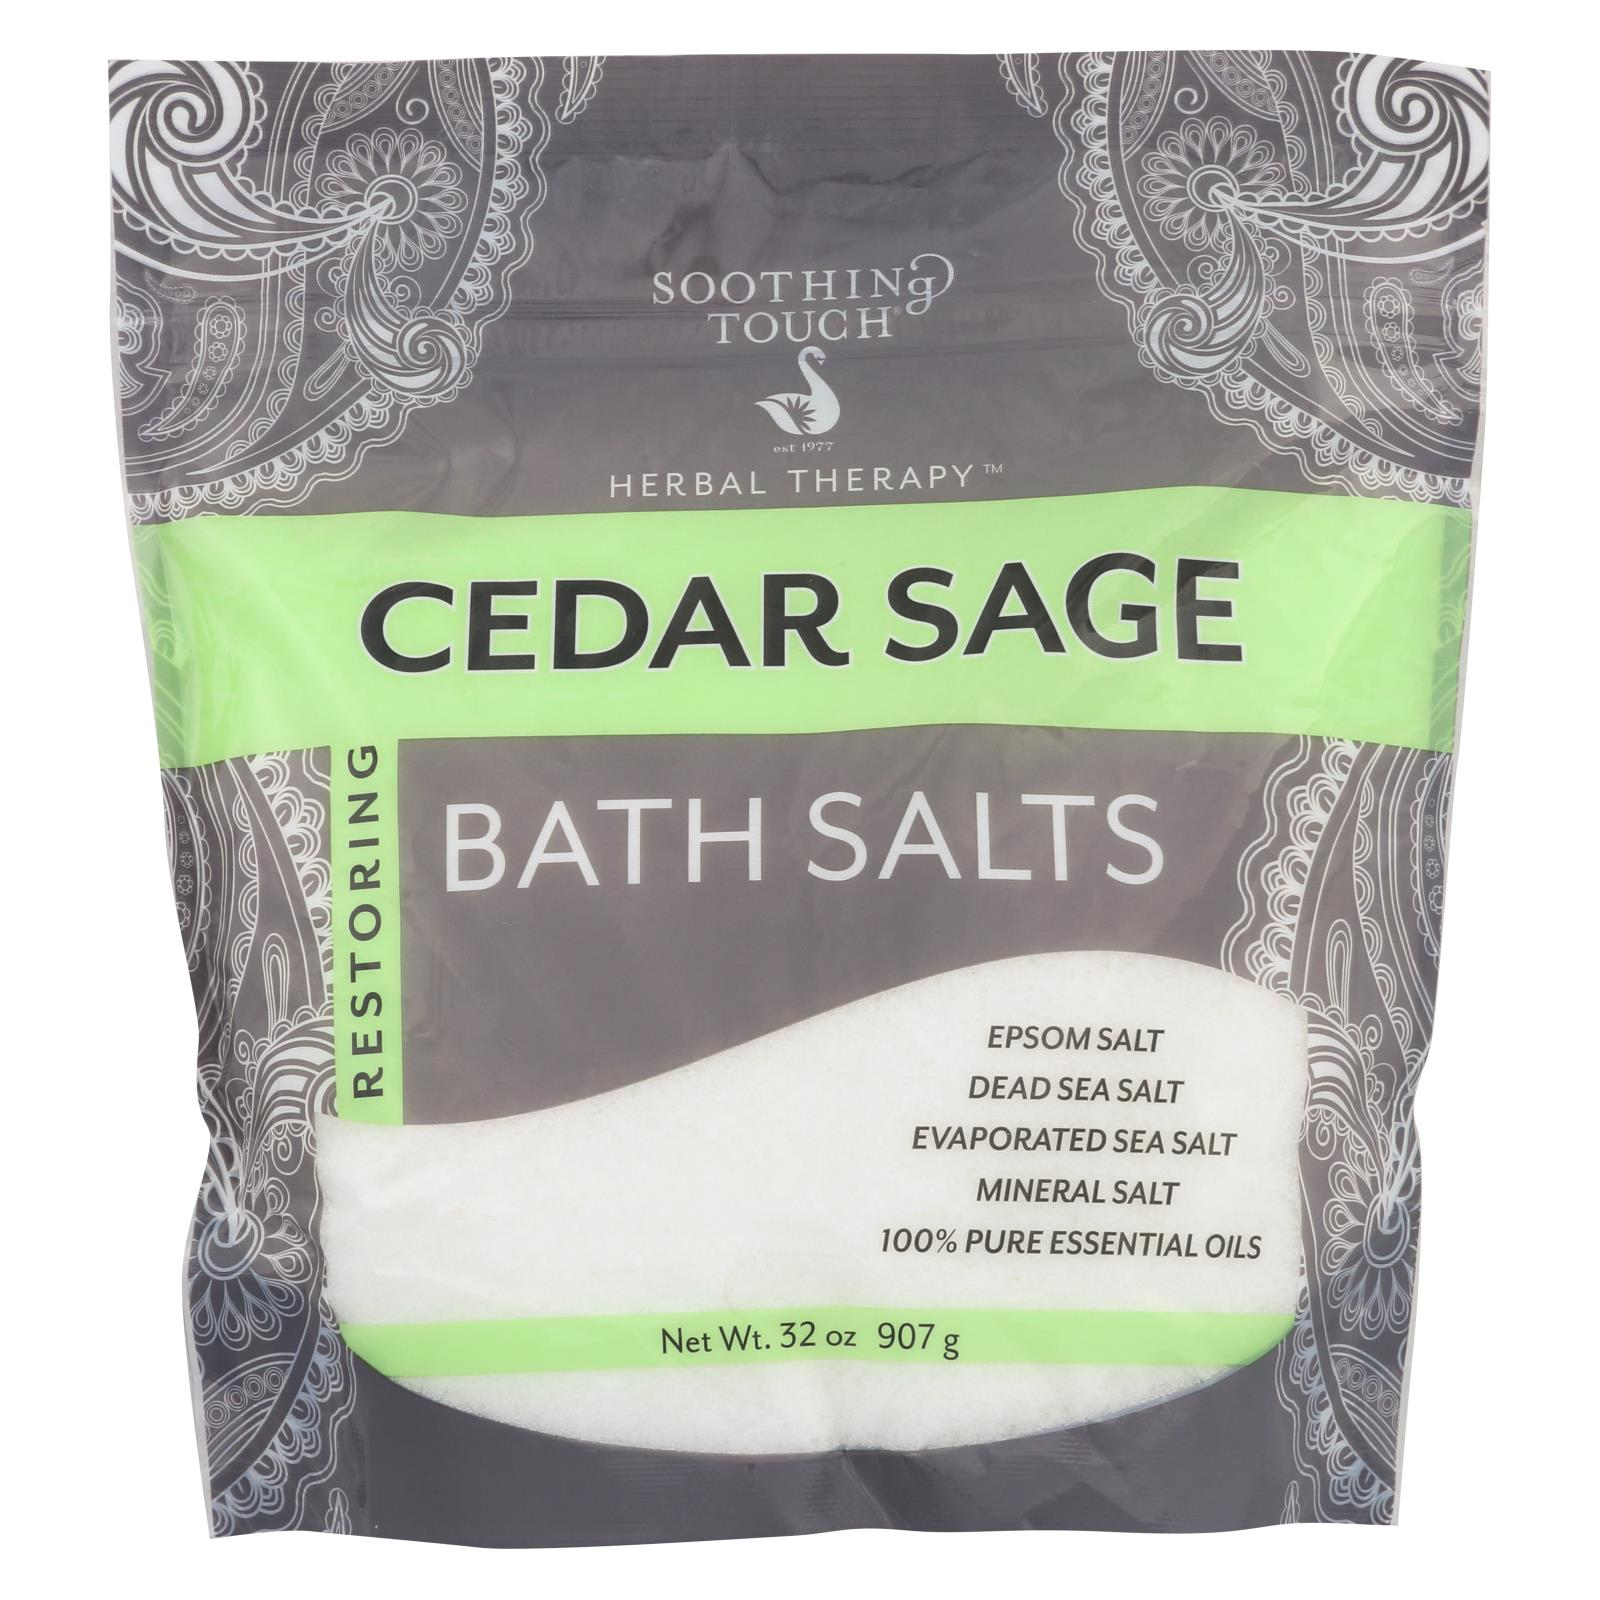 Buy Soothing Touch Bath Salts - Cedar Sage - 32 oz - Bubble Bath and Soaks from Veroeco.com